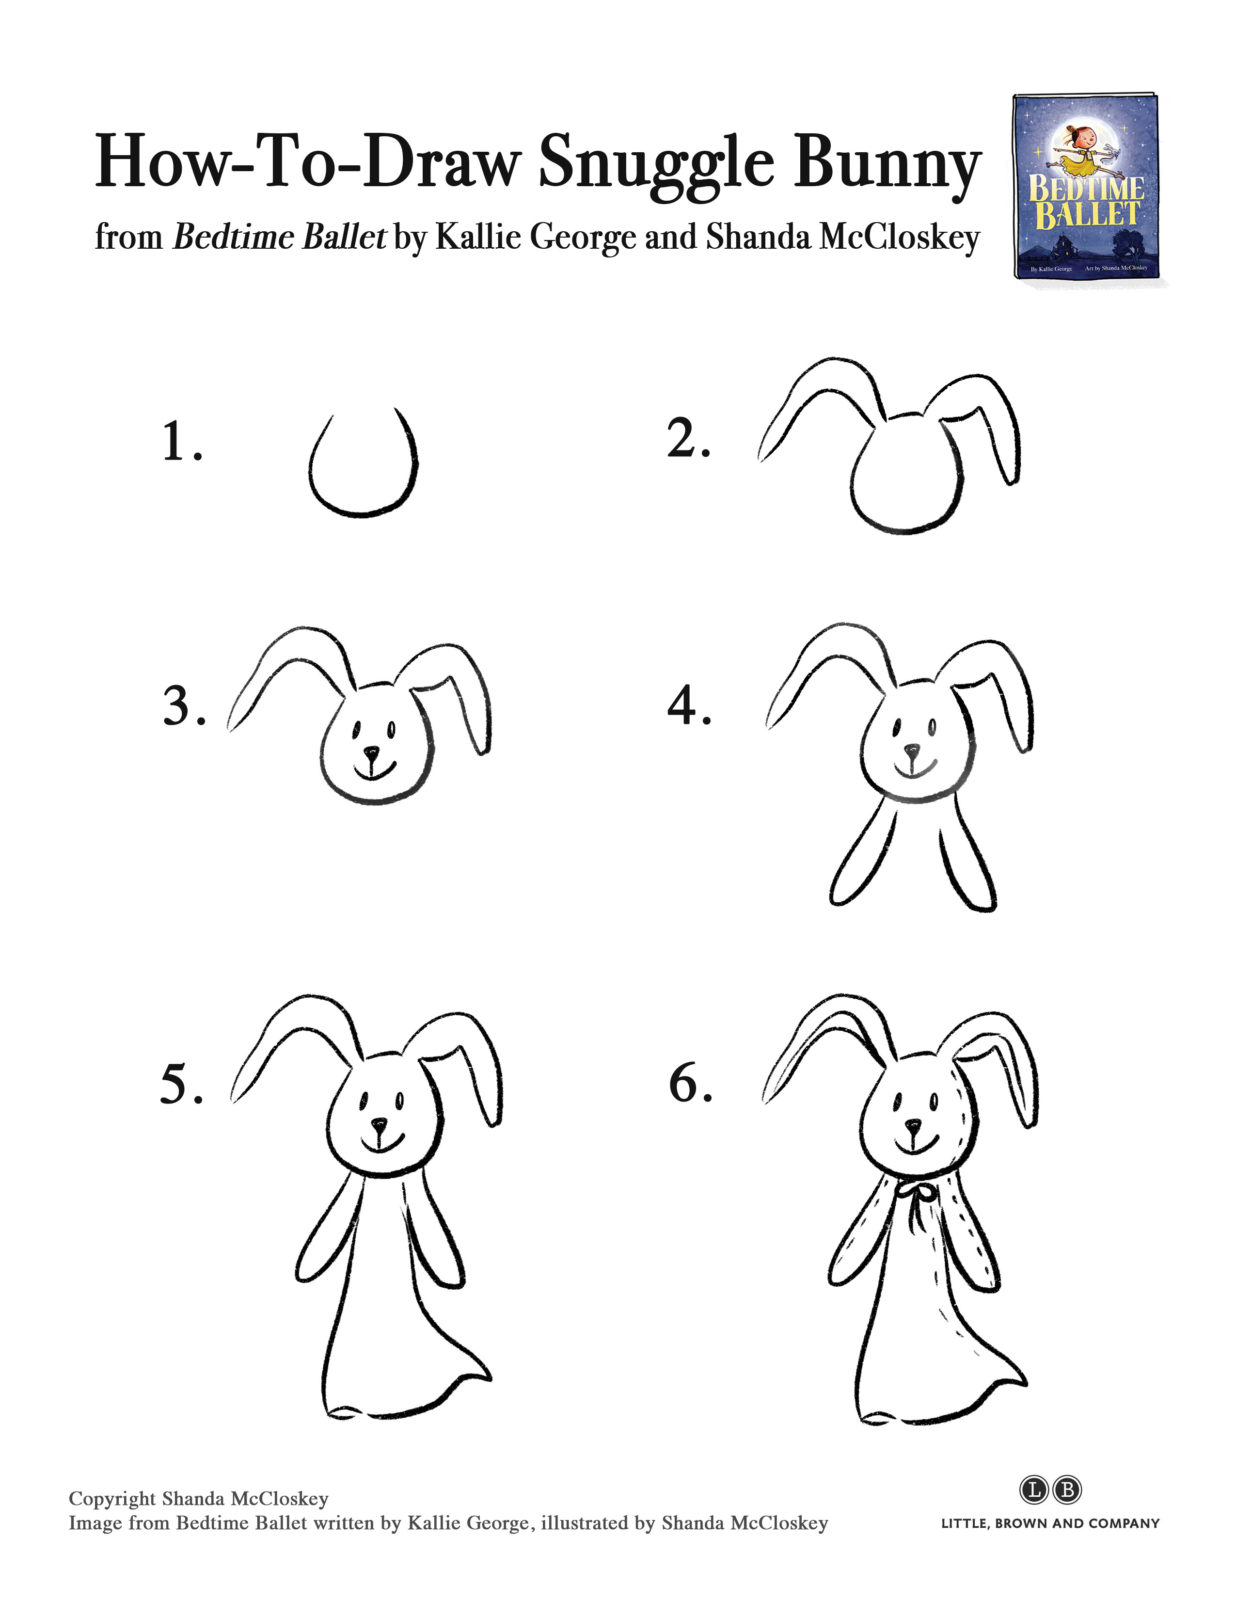 How-to-draw Snuggle Bunny from the book Bedtime Ballet